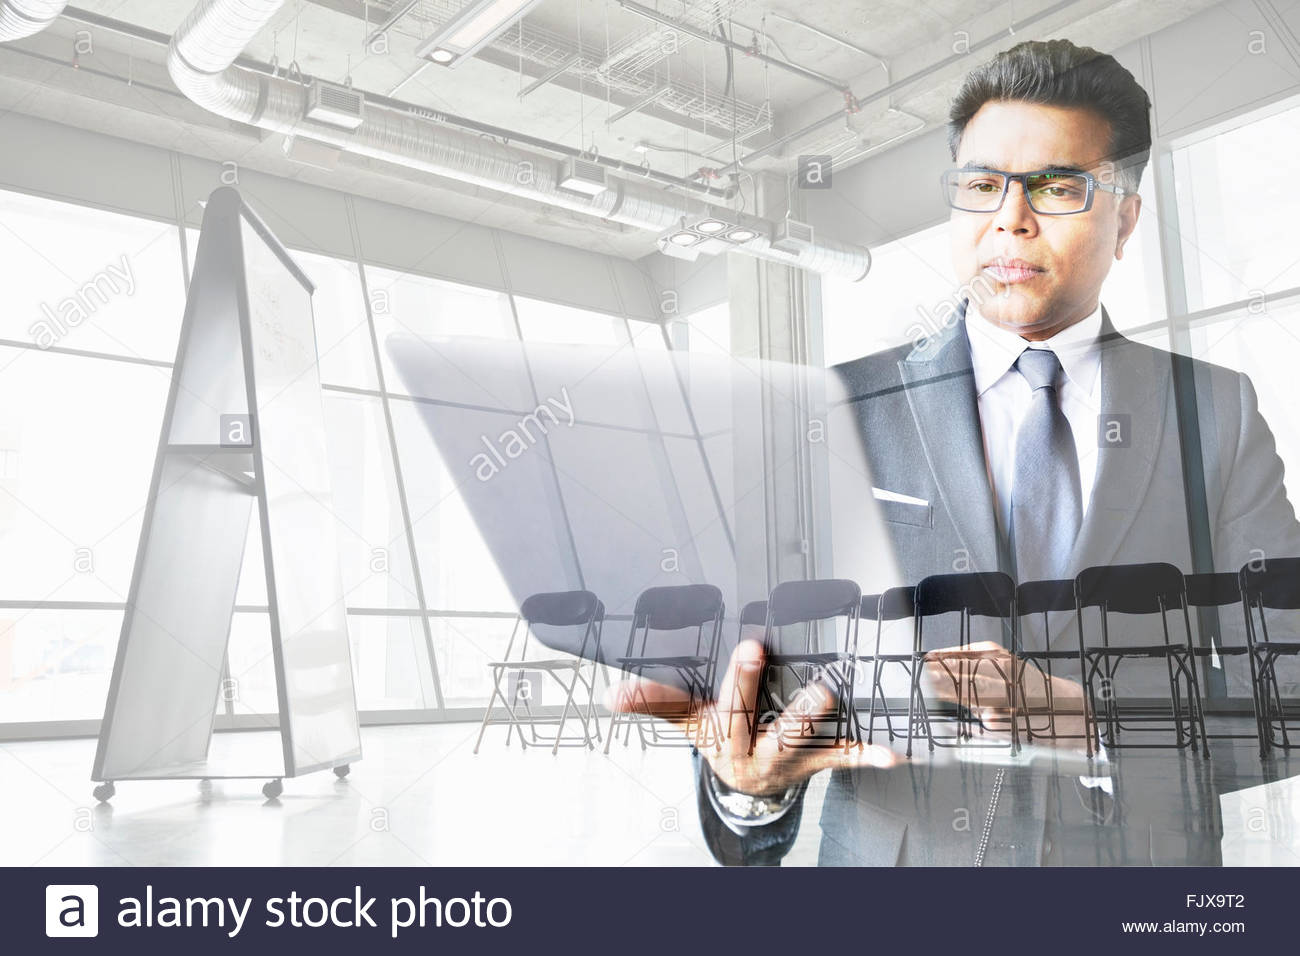 Digital composite businessman working at laptop conference room - Stock Image